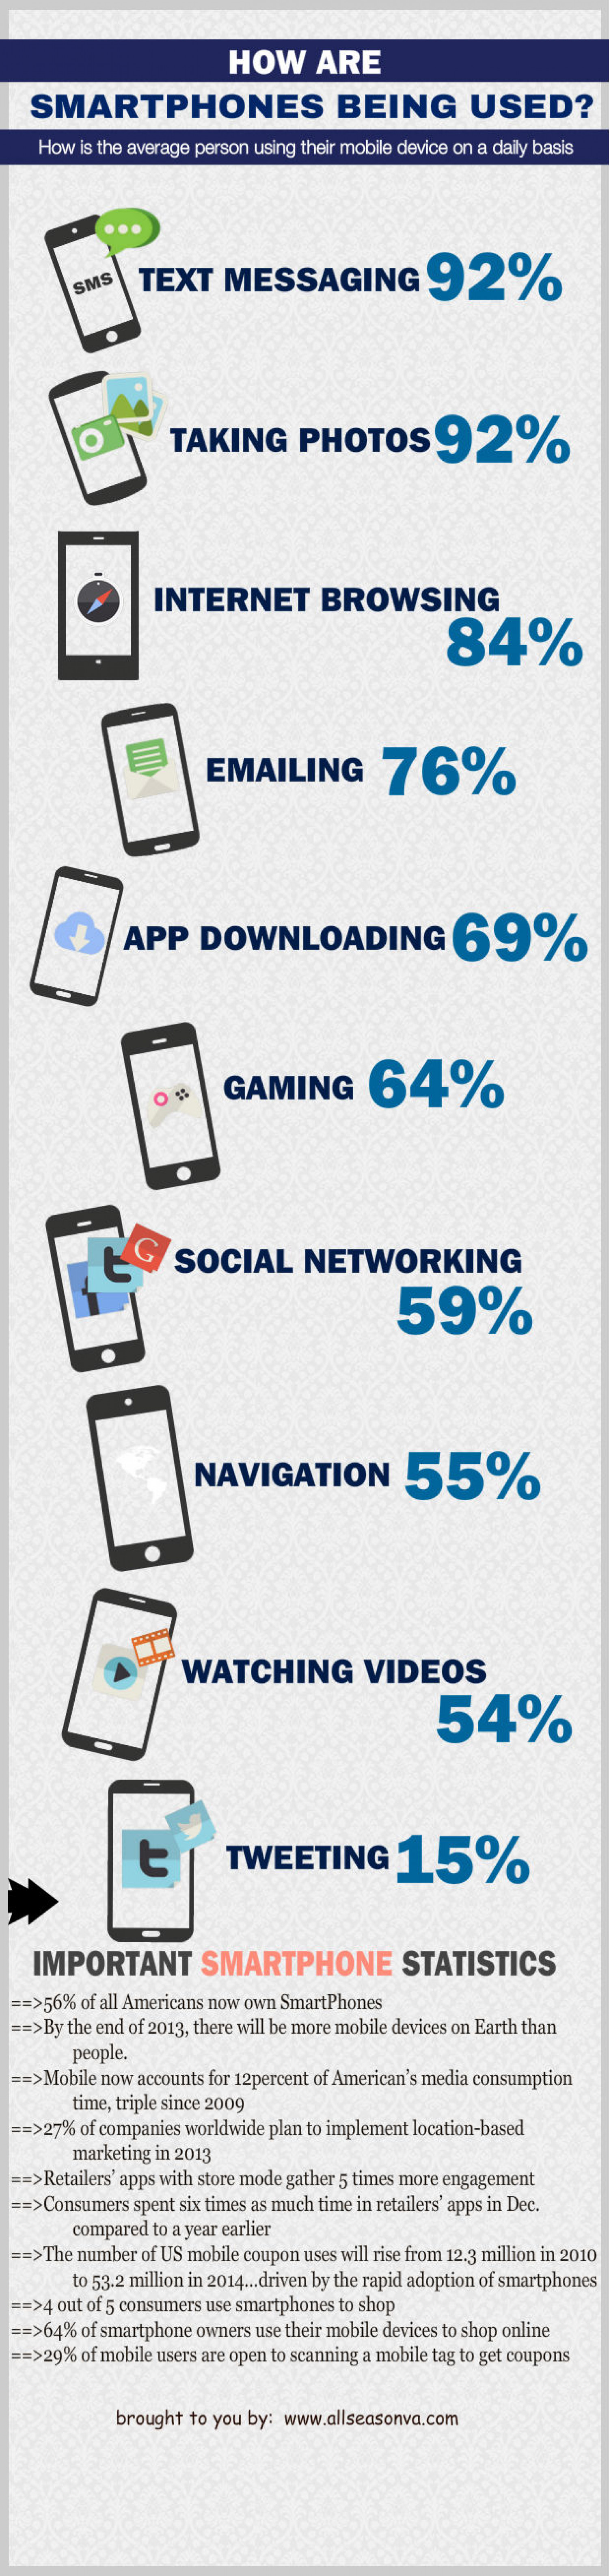 How SmartPhones Are Being Used Infographic